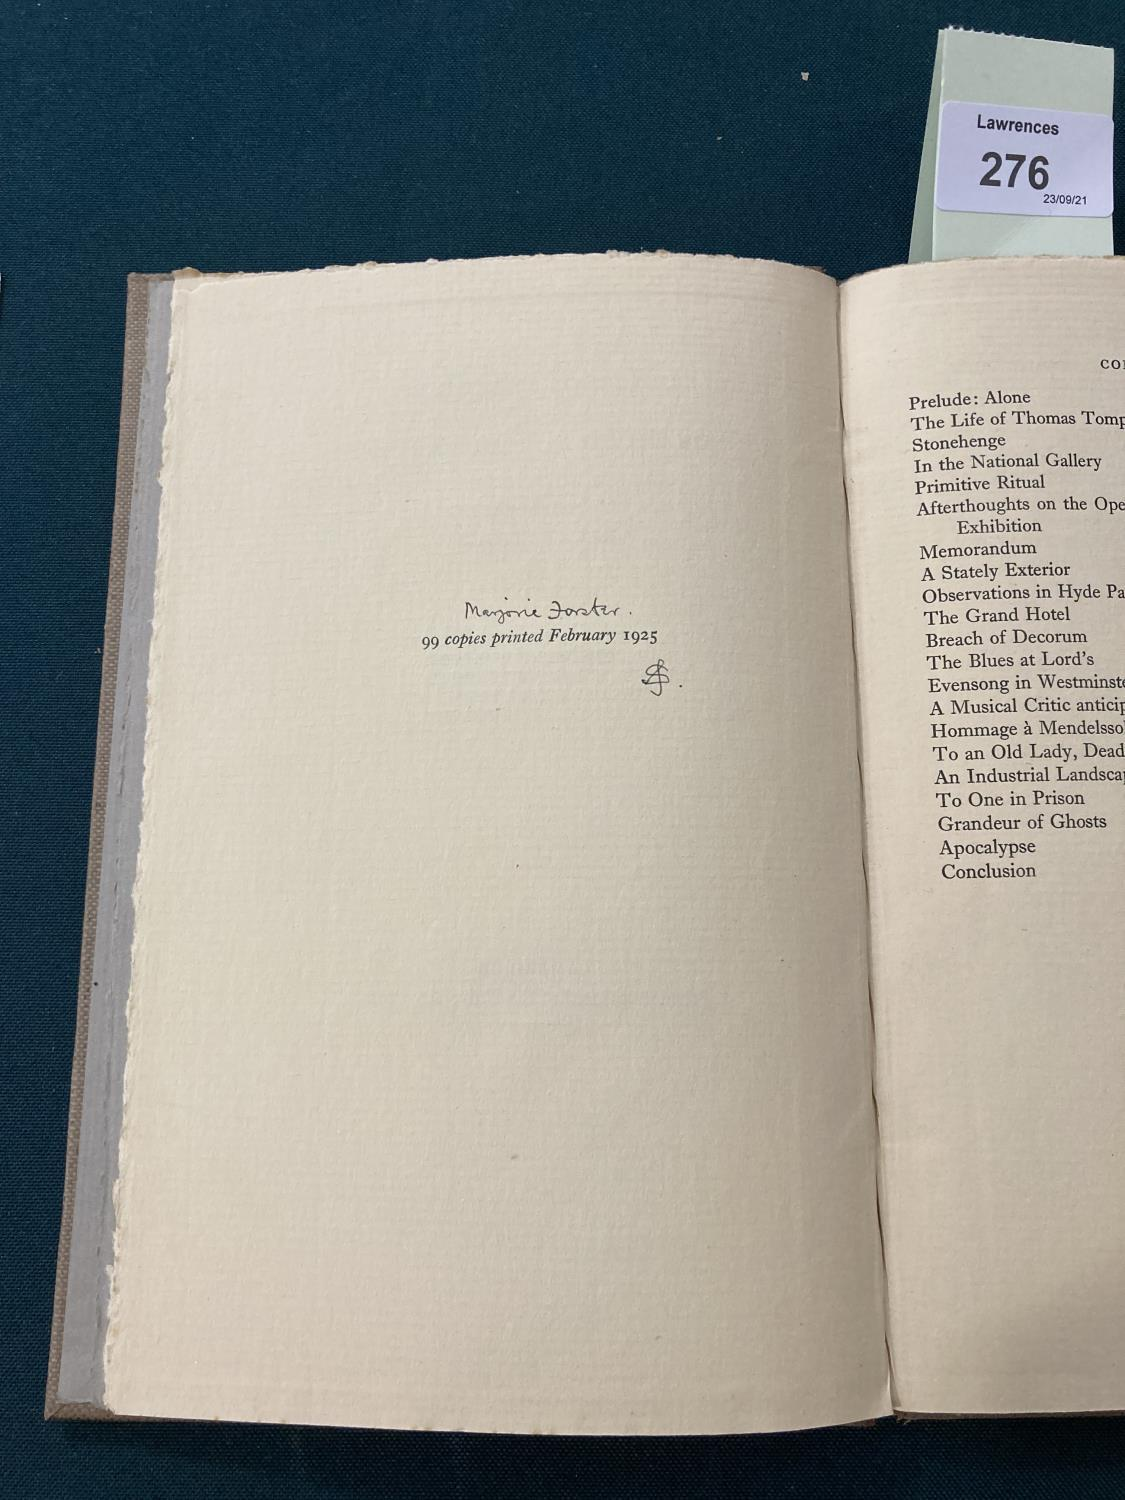 Sassoon, Siegfried. Lingual Exercises for Advanced Vocabularies, one of 99 copies, inscribed by - Image 4 of 6